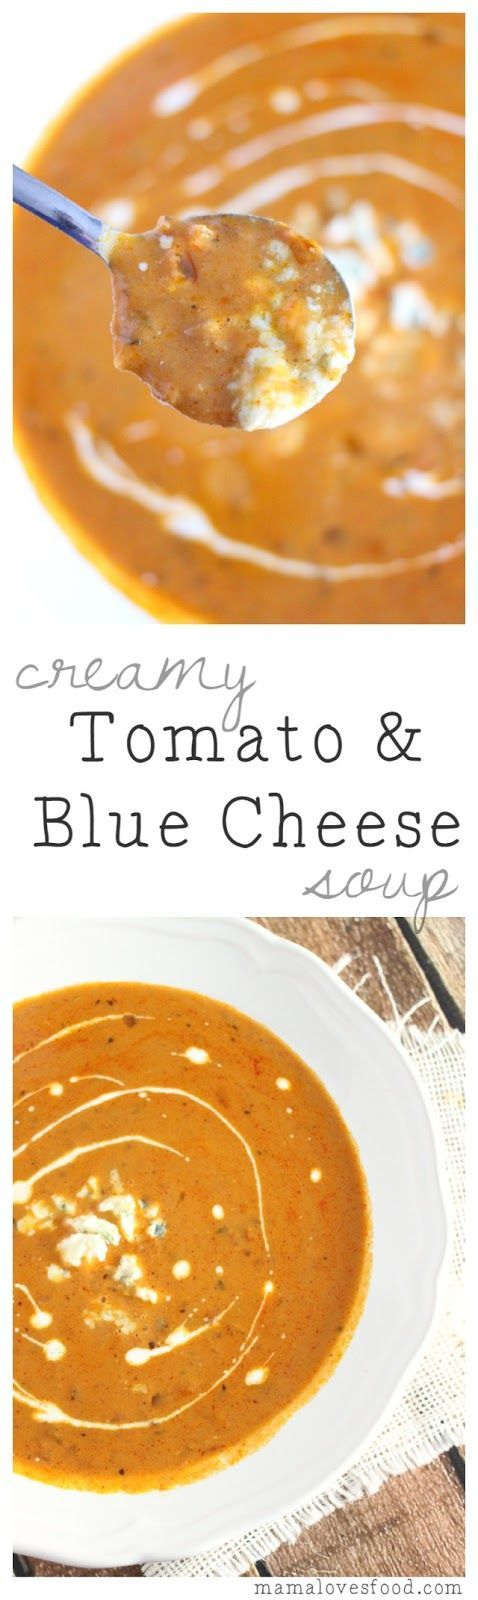 Creamy Tomato and Blue Cheese Soup - you'll be addicted to this soup as soon as you taste it.  SO delicious!